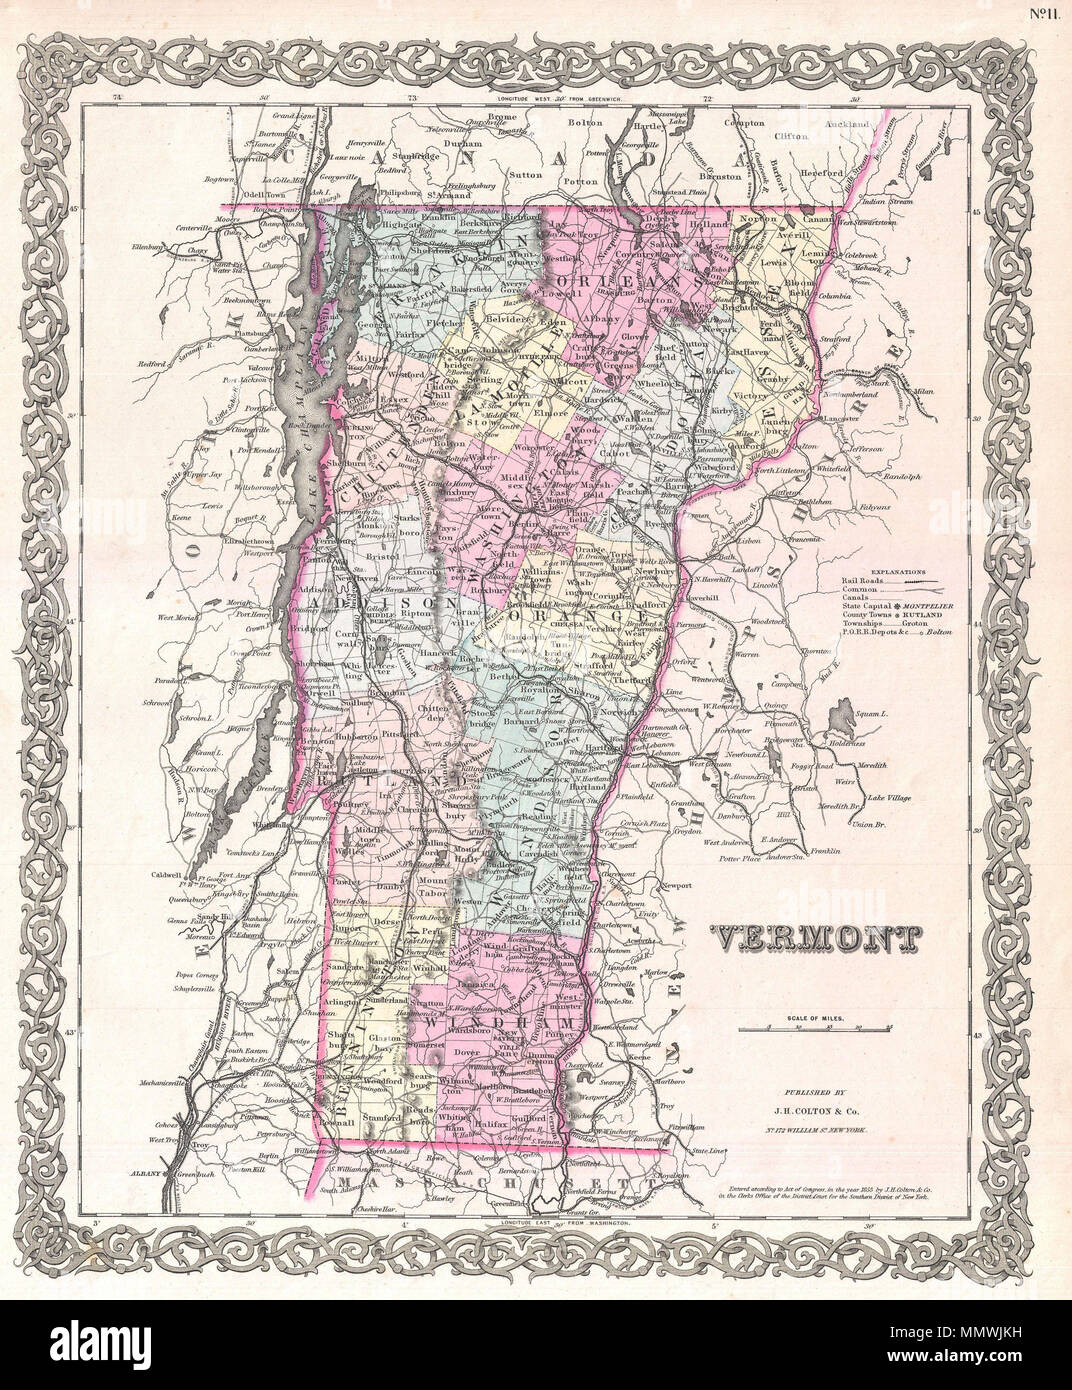 Vermont Canada Map English: A beautiful 1855 first edition example of Colton's map of